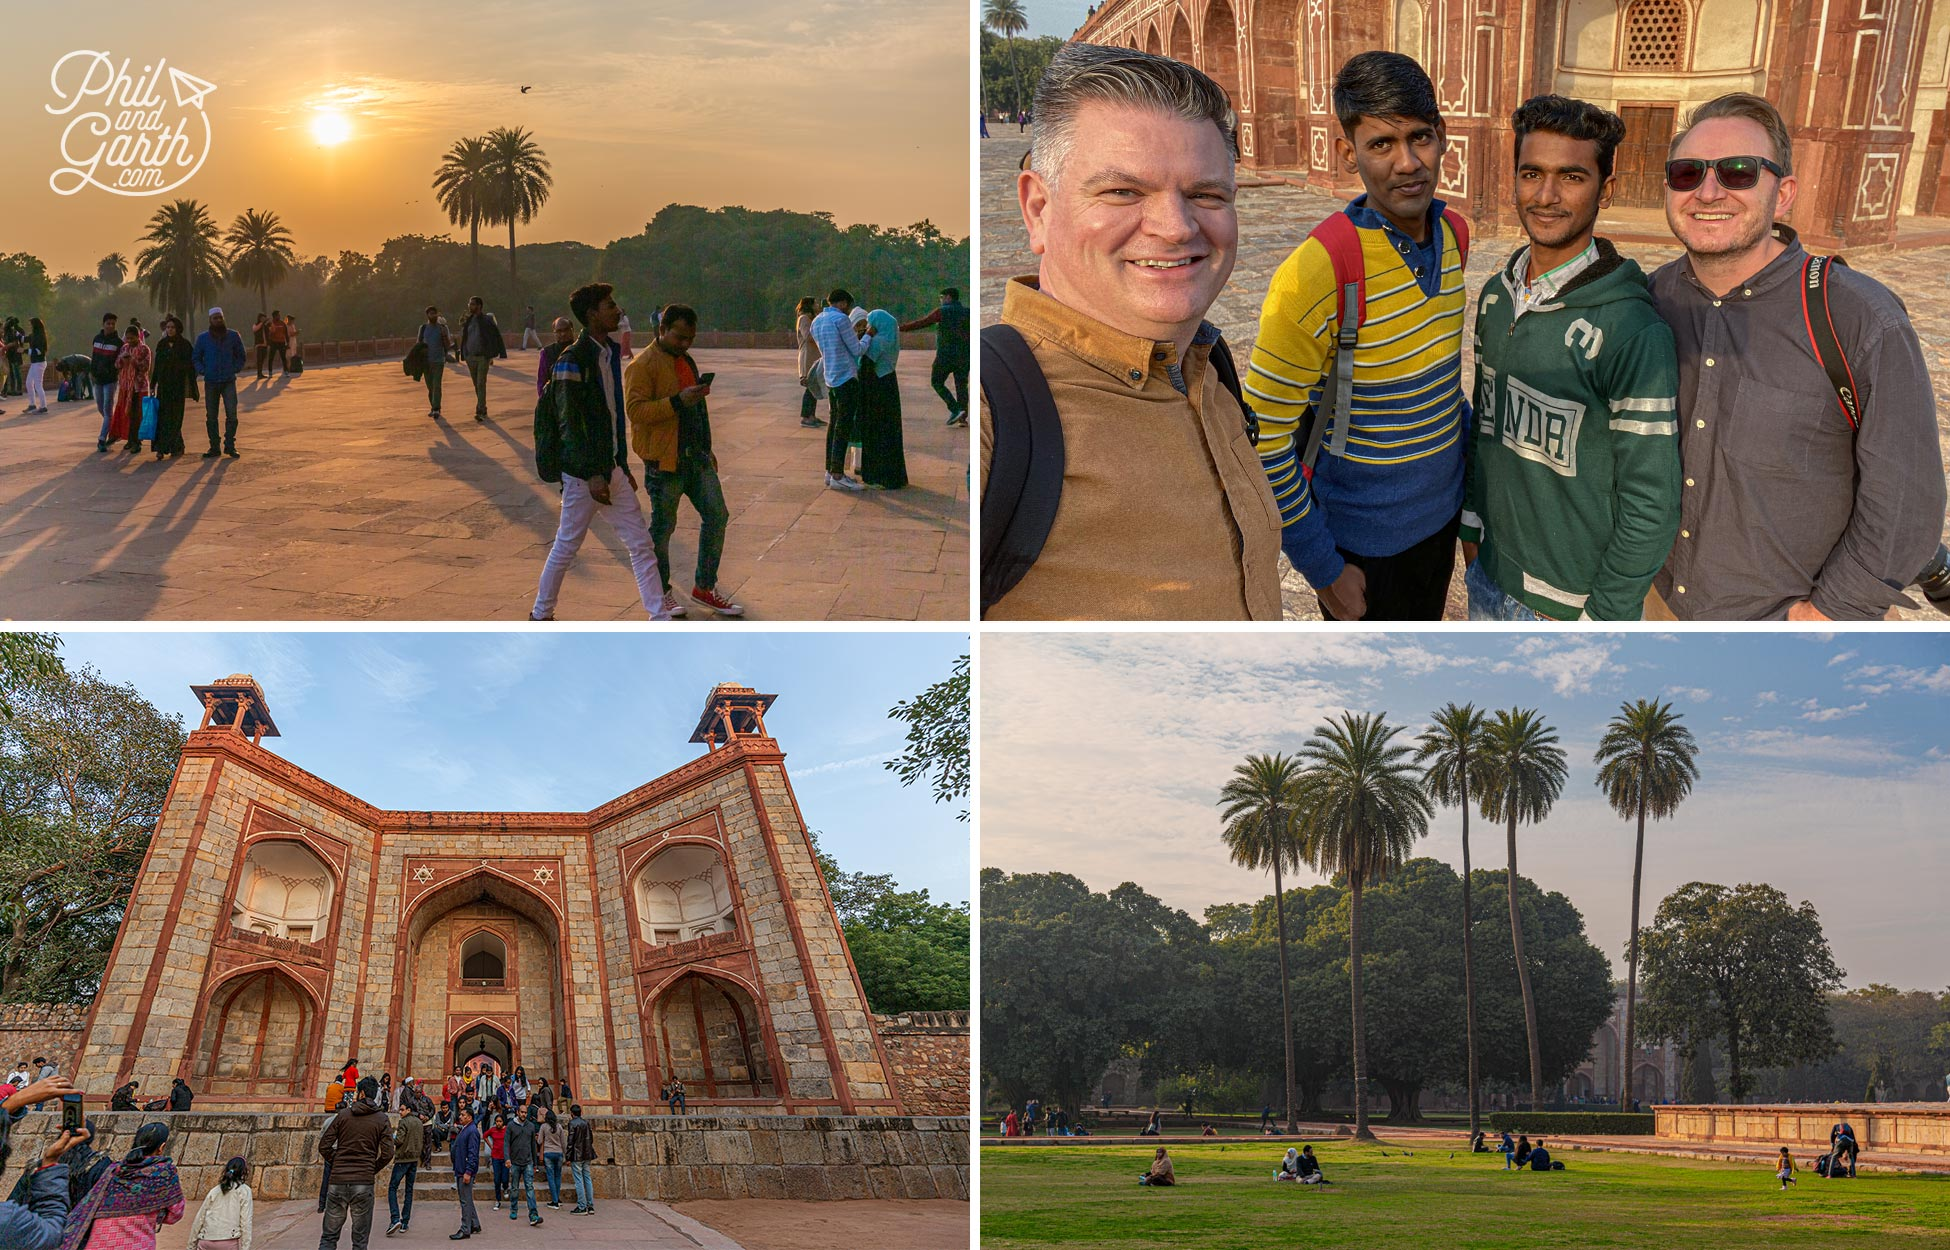 Making new friends with the locals at Humayun's Tomb